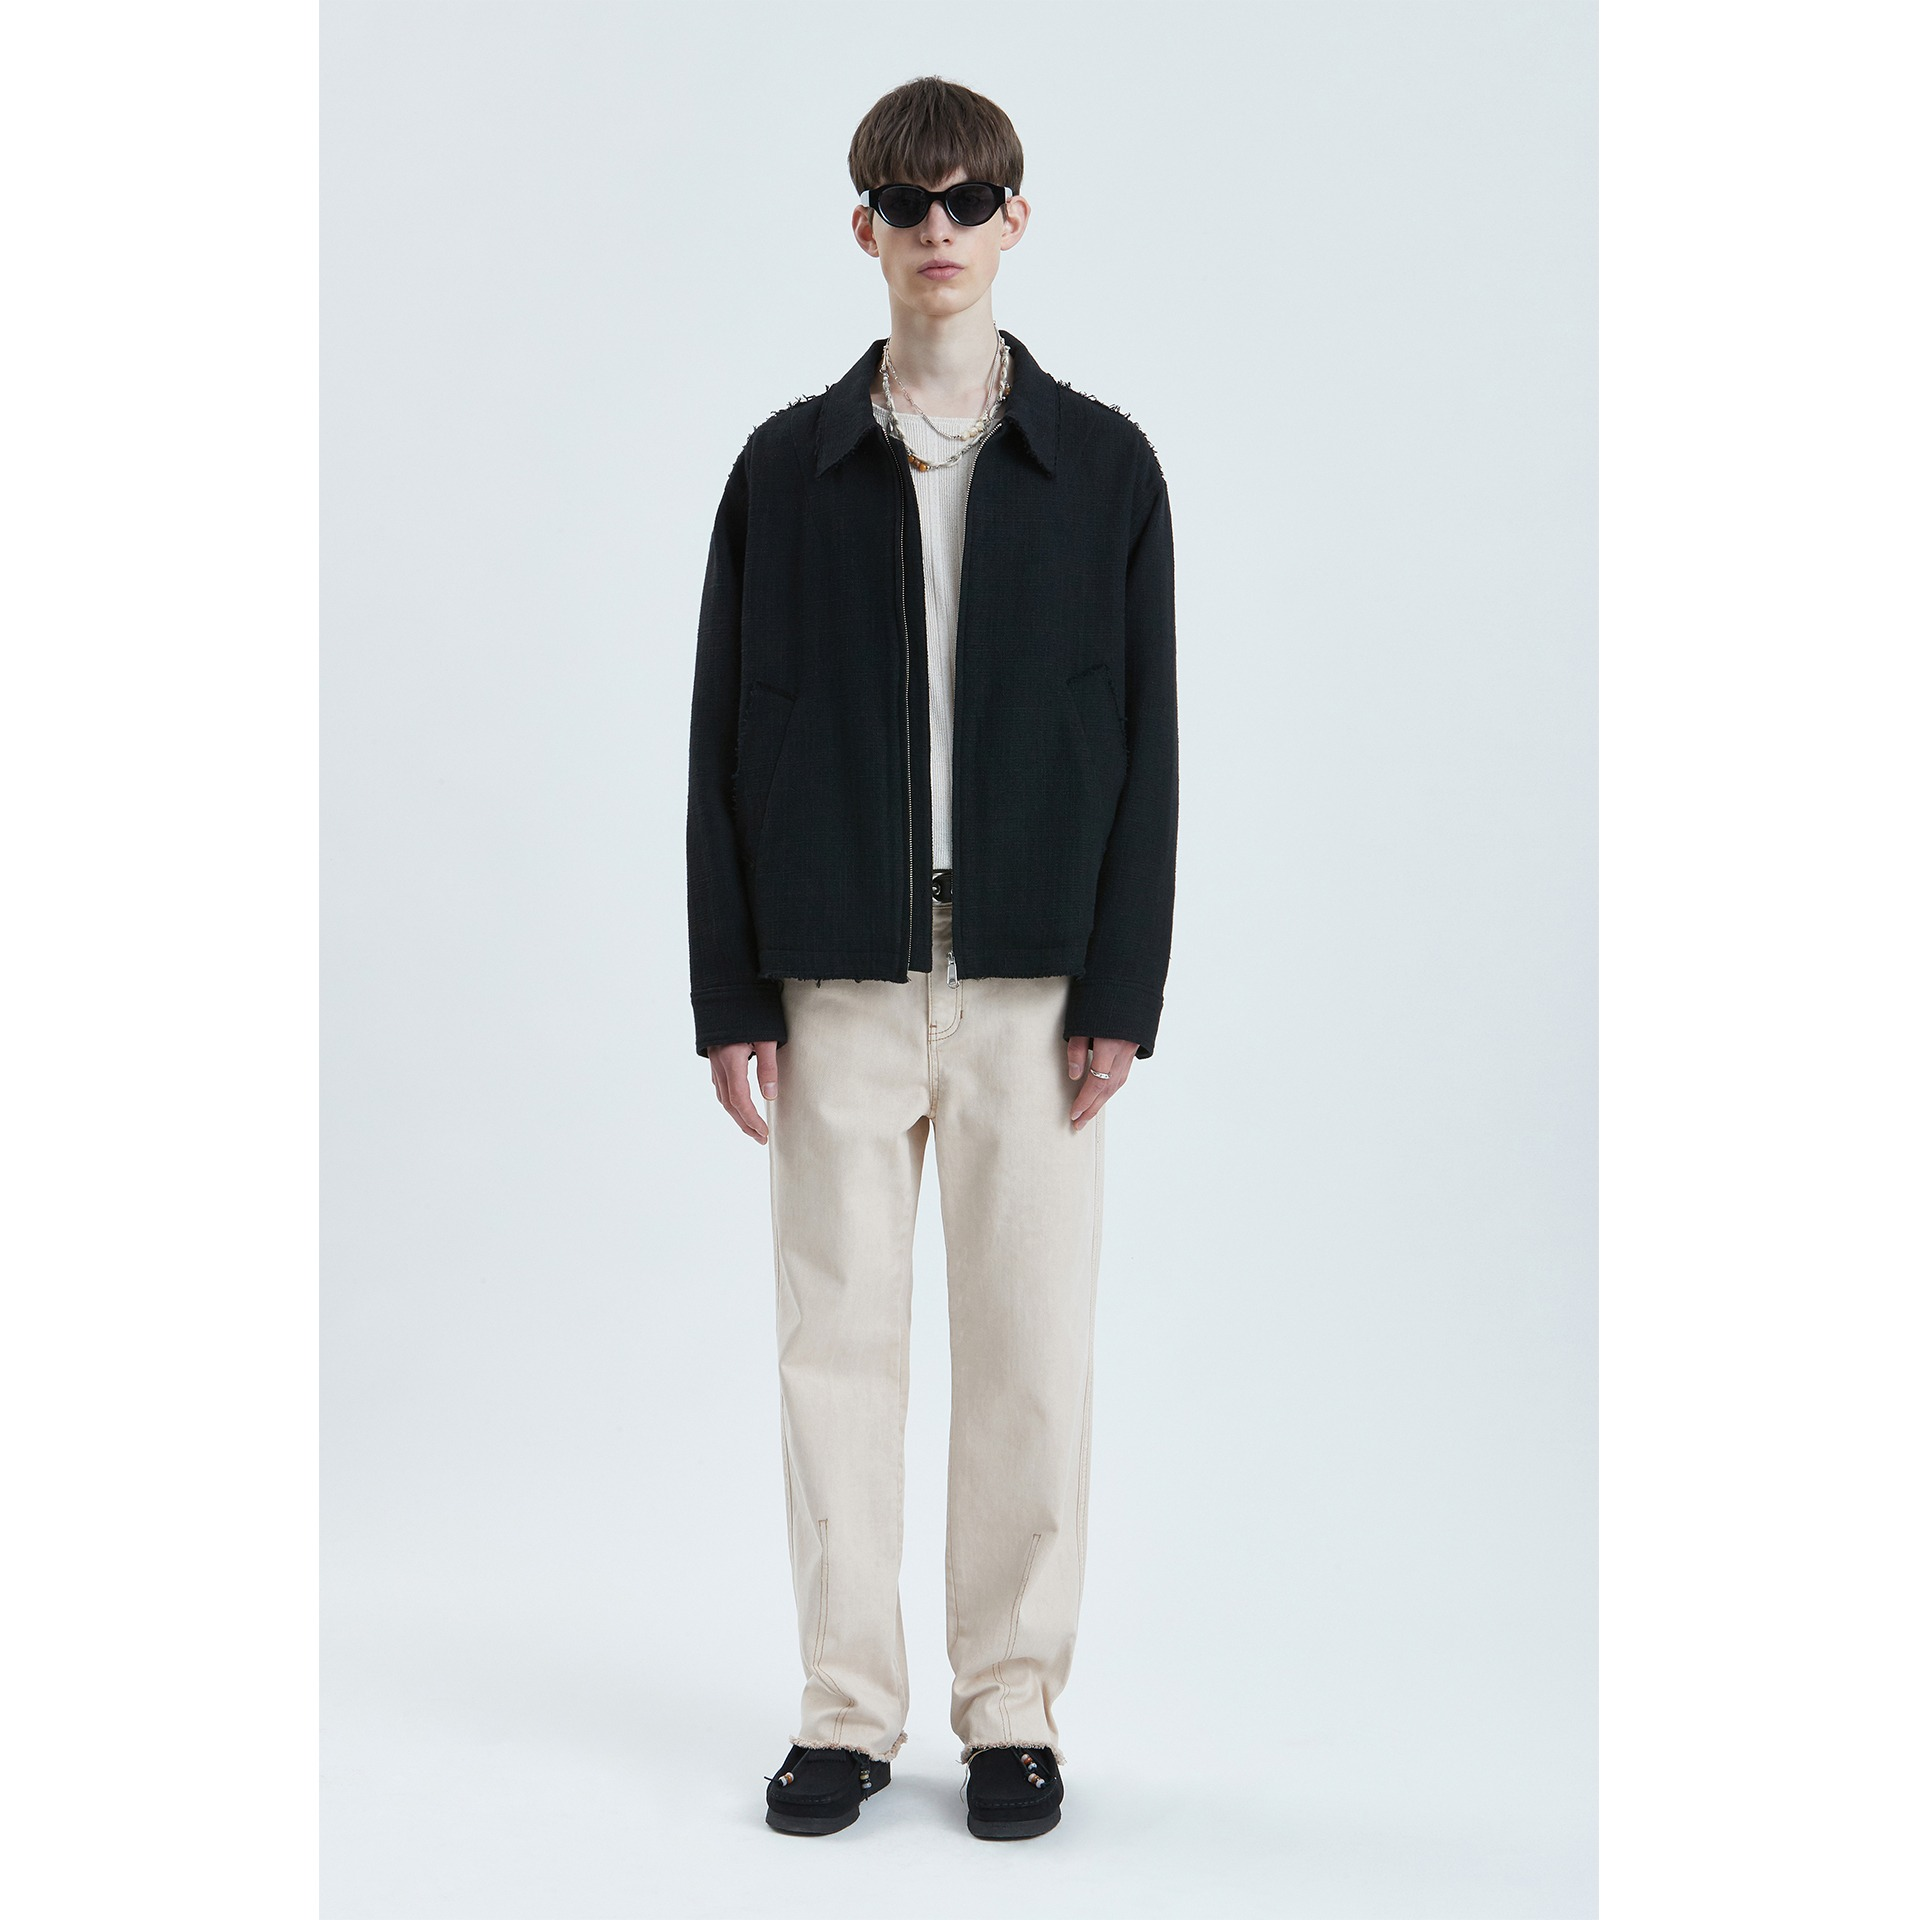 LIFUL CUT-OFF TWEED JACKET black